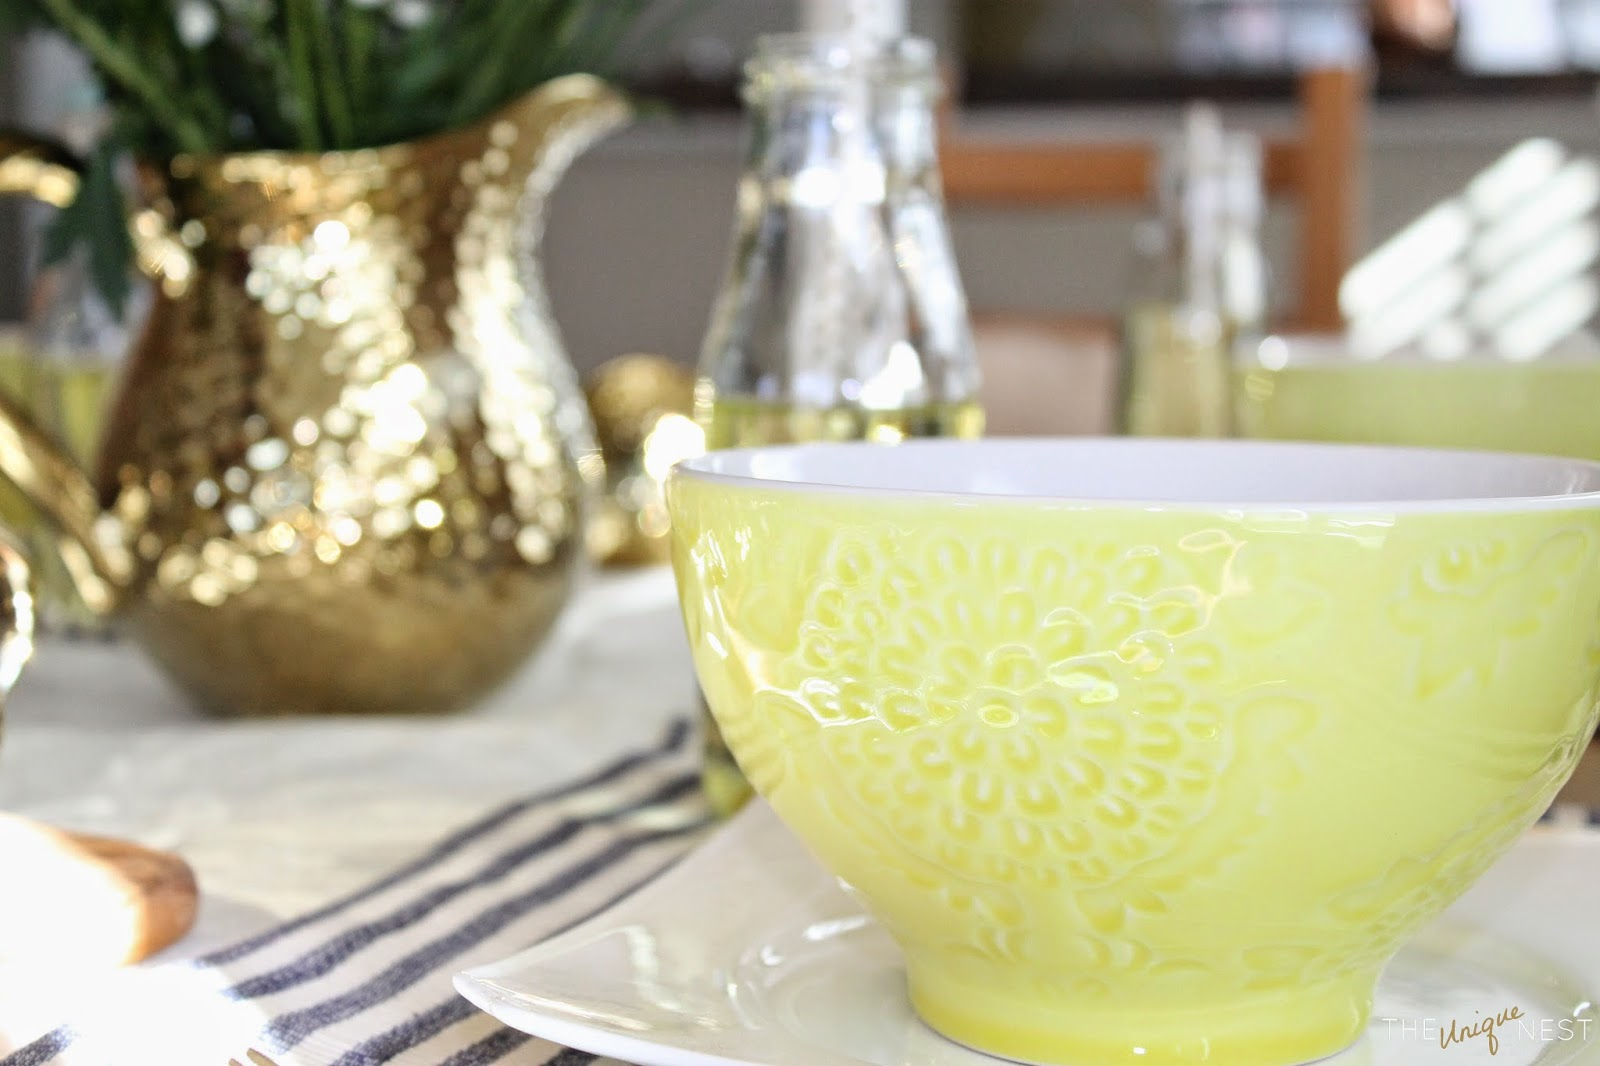 To add a little sparkle and glitz to the table I found this gorgeous gold pitcher with matching creamer/sugar by Luxe Habitat. For glassware I used replica ... & Coastal meets Country: A Spring Tablescape - The Unique Nest